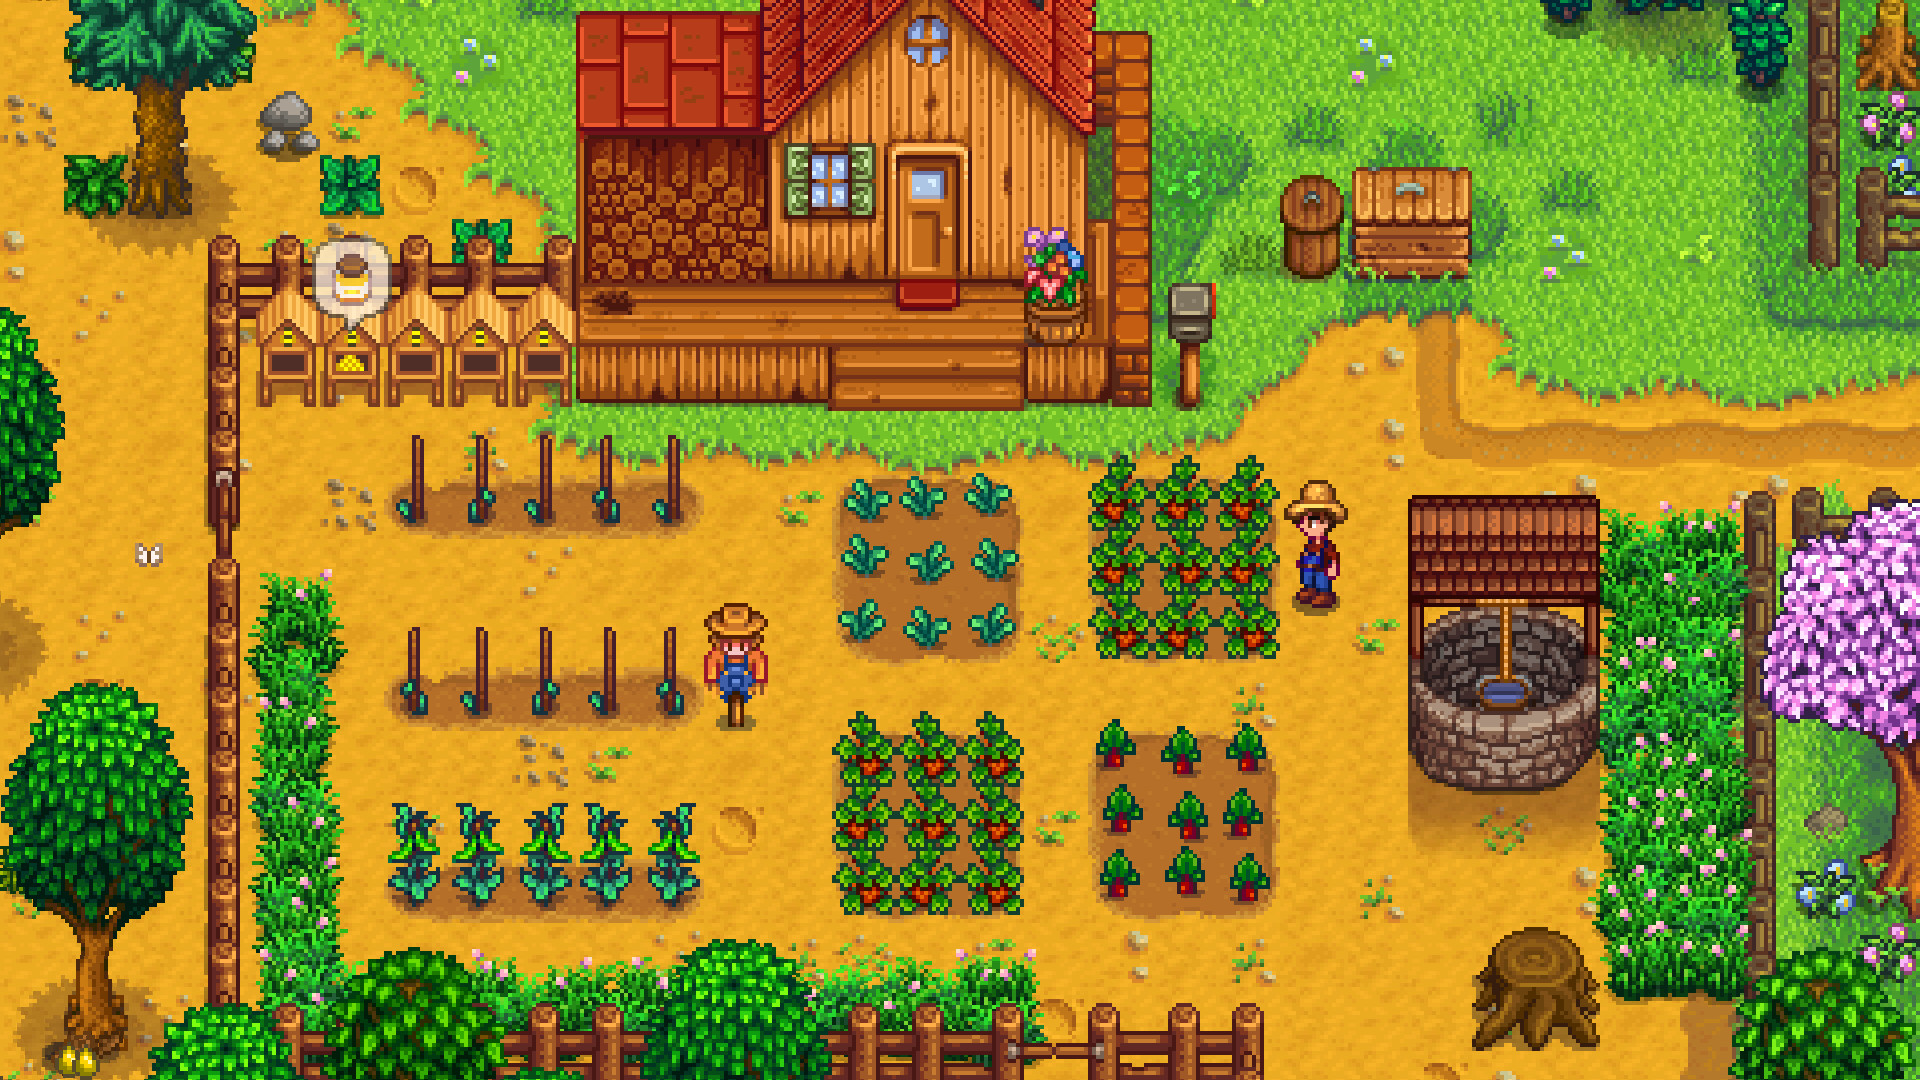 Stardew Valley is headed to iOS this month and then Android